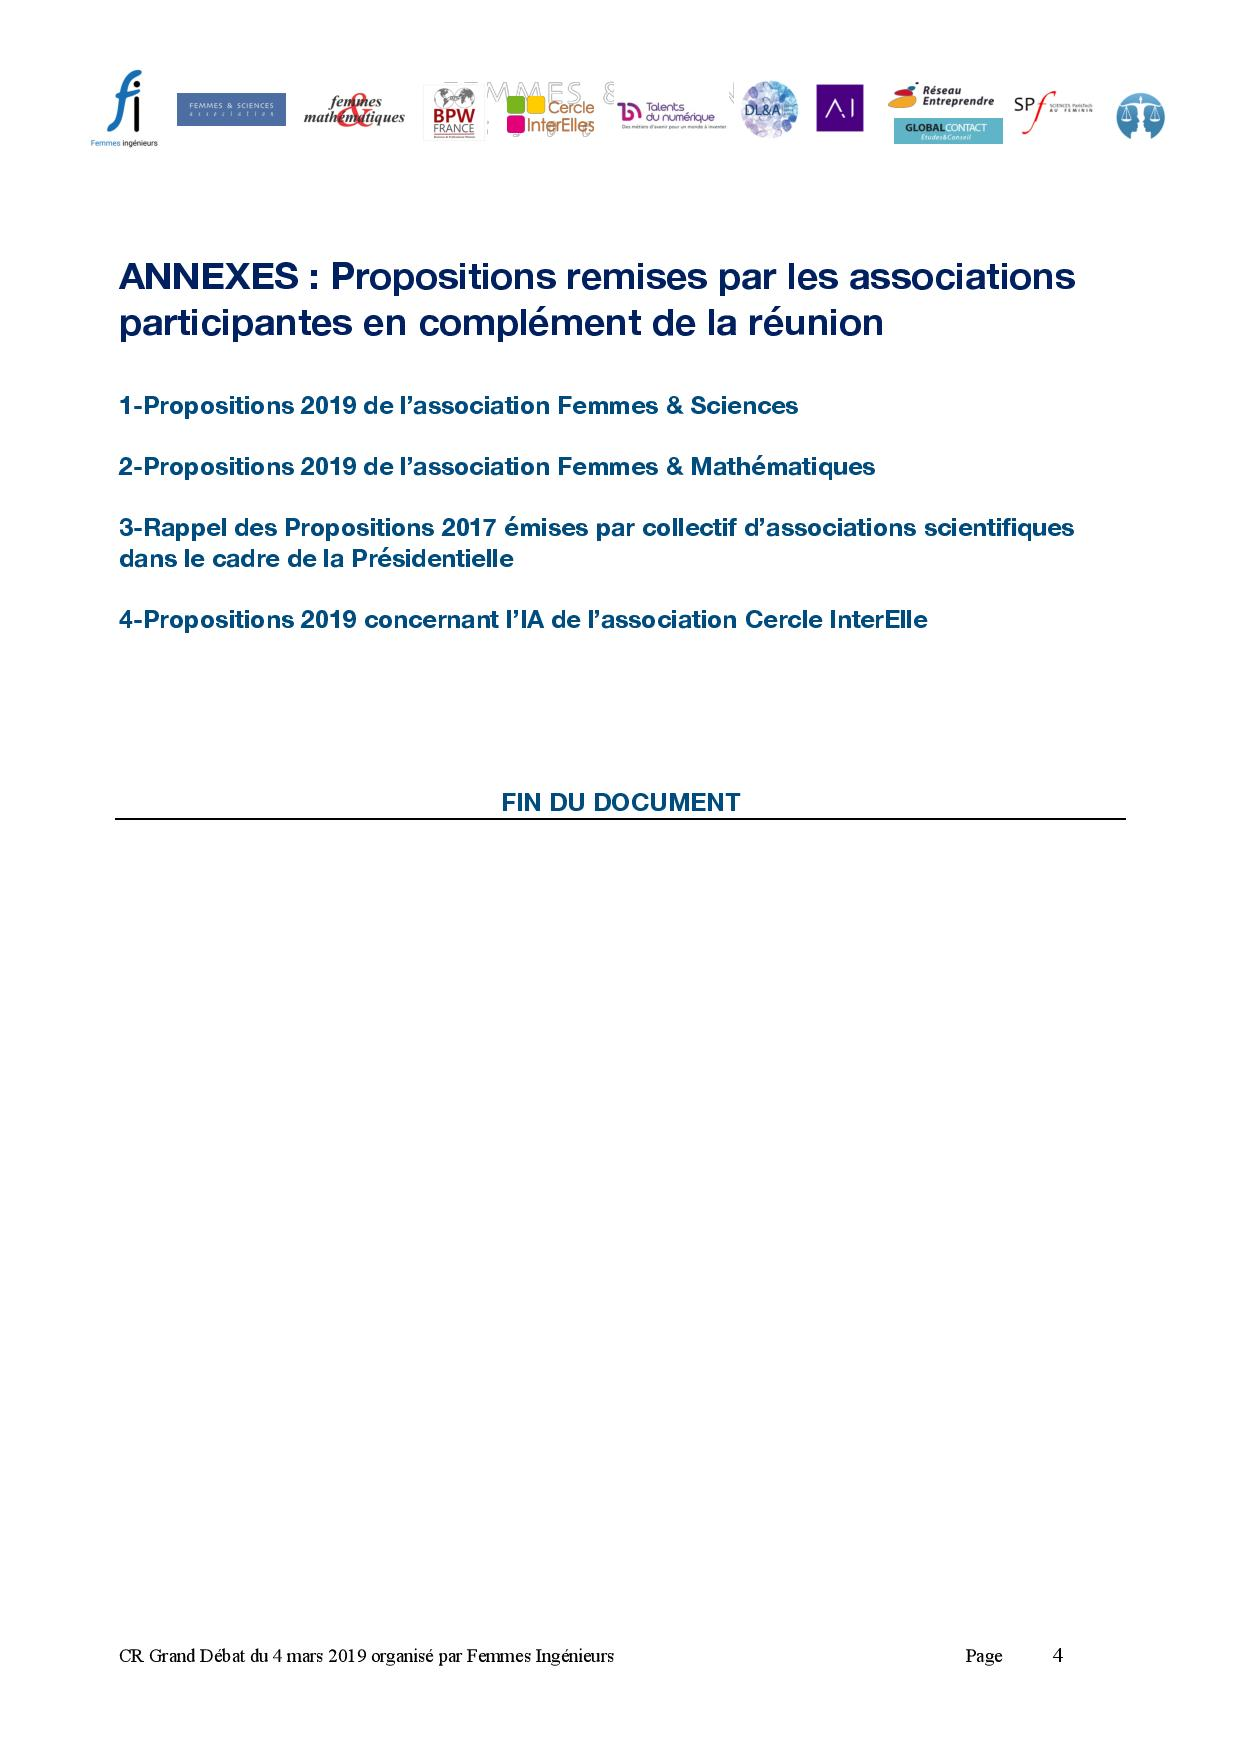 20190403 FI Grand Debat Propositions V3-page-004